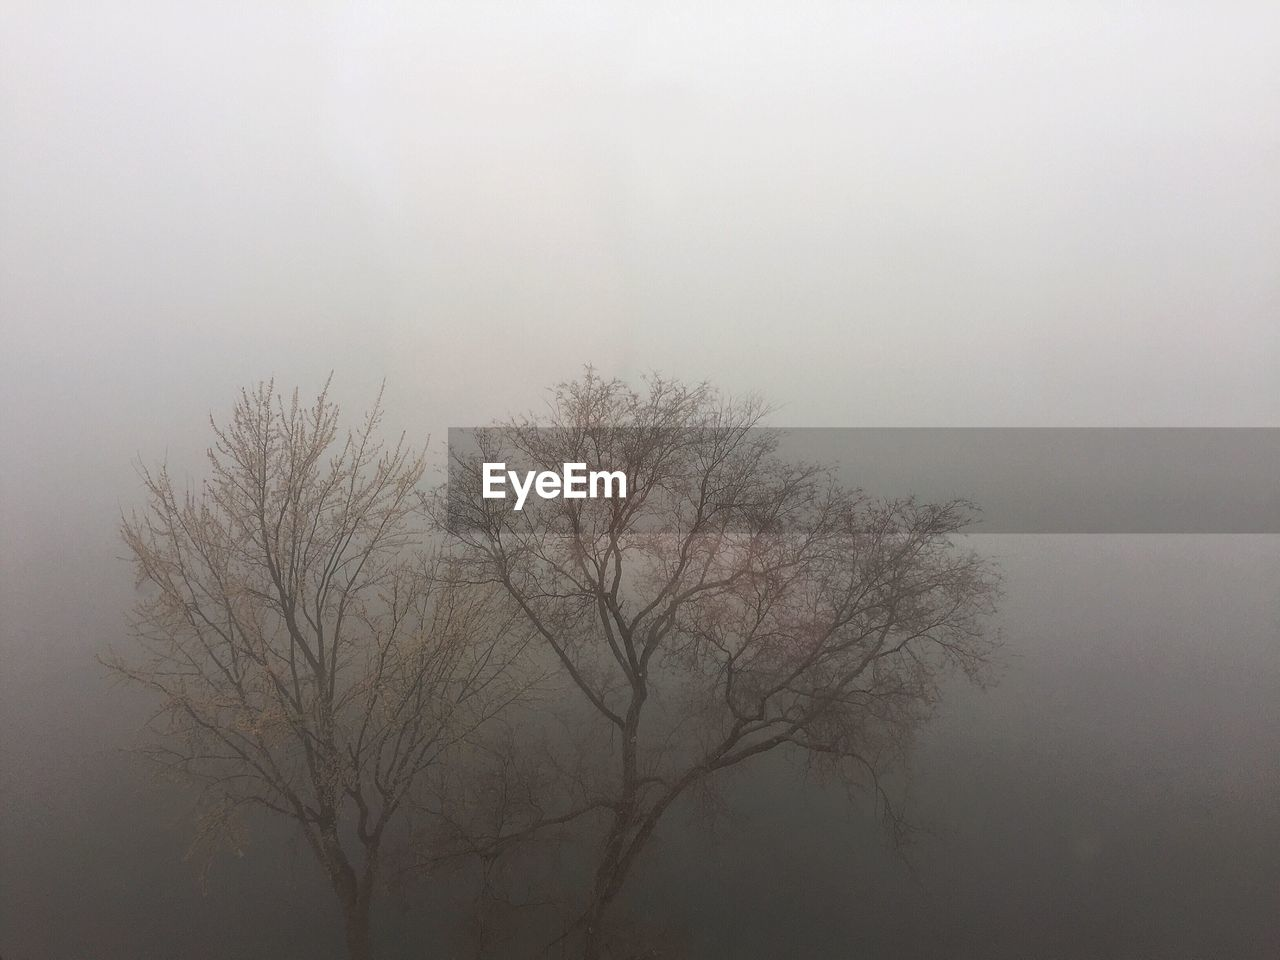 fog, nature, bare tree, tree, tranquility, beauty in nature, mist, outdoors, no people, low angle view, tranquil scene, hazy, branch, sky, scenics, day, landscape